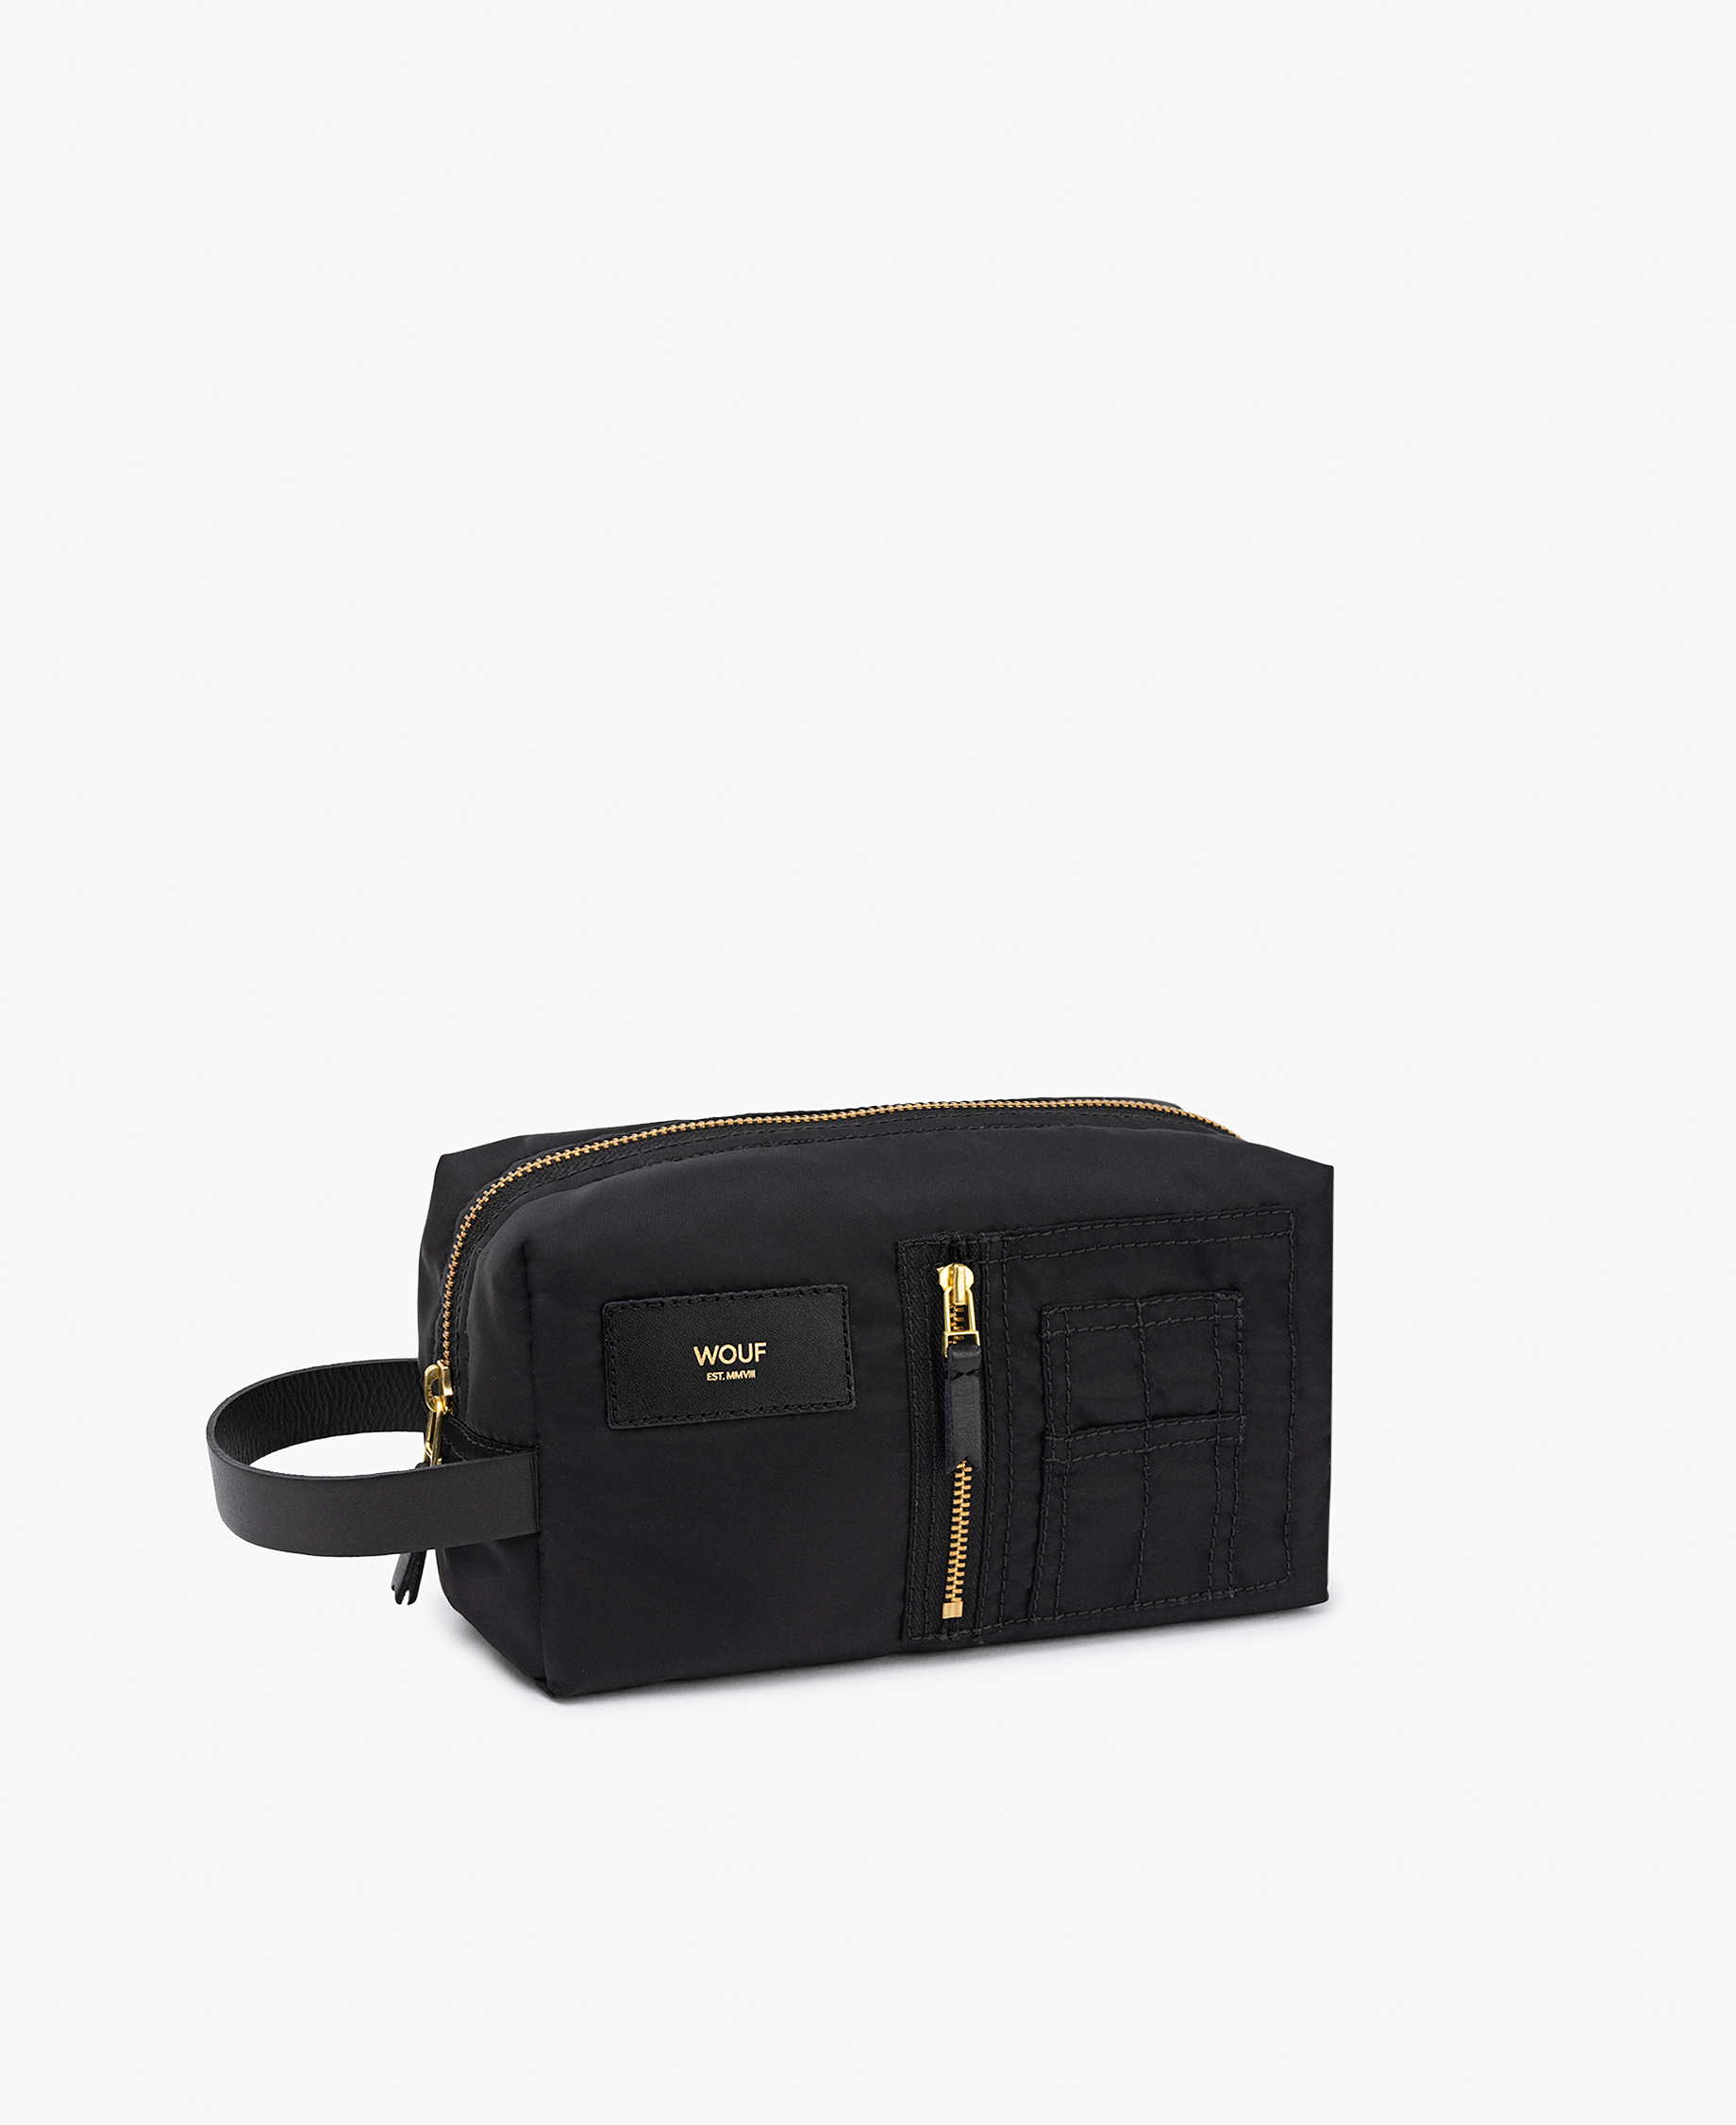 black toiletry bag for man